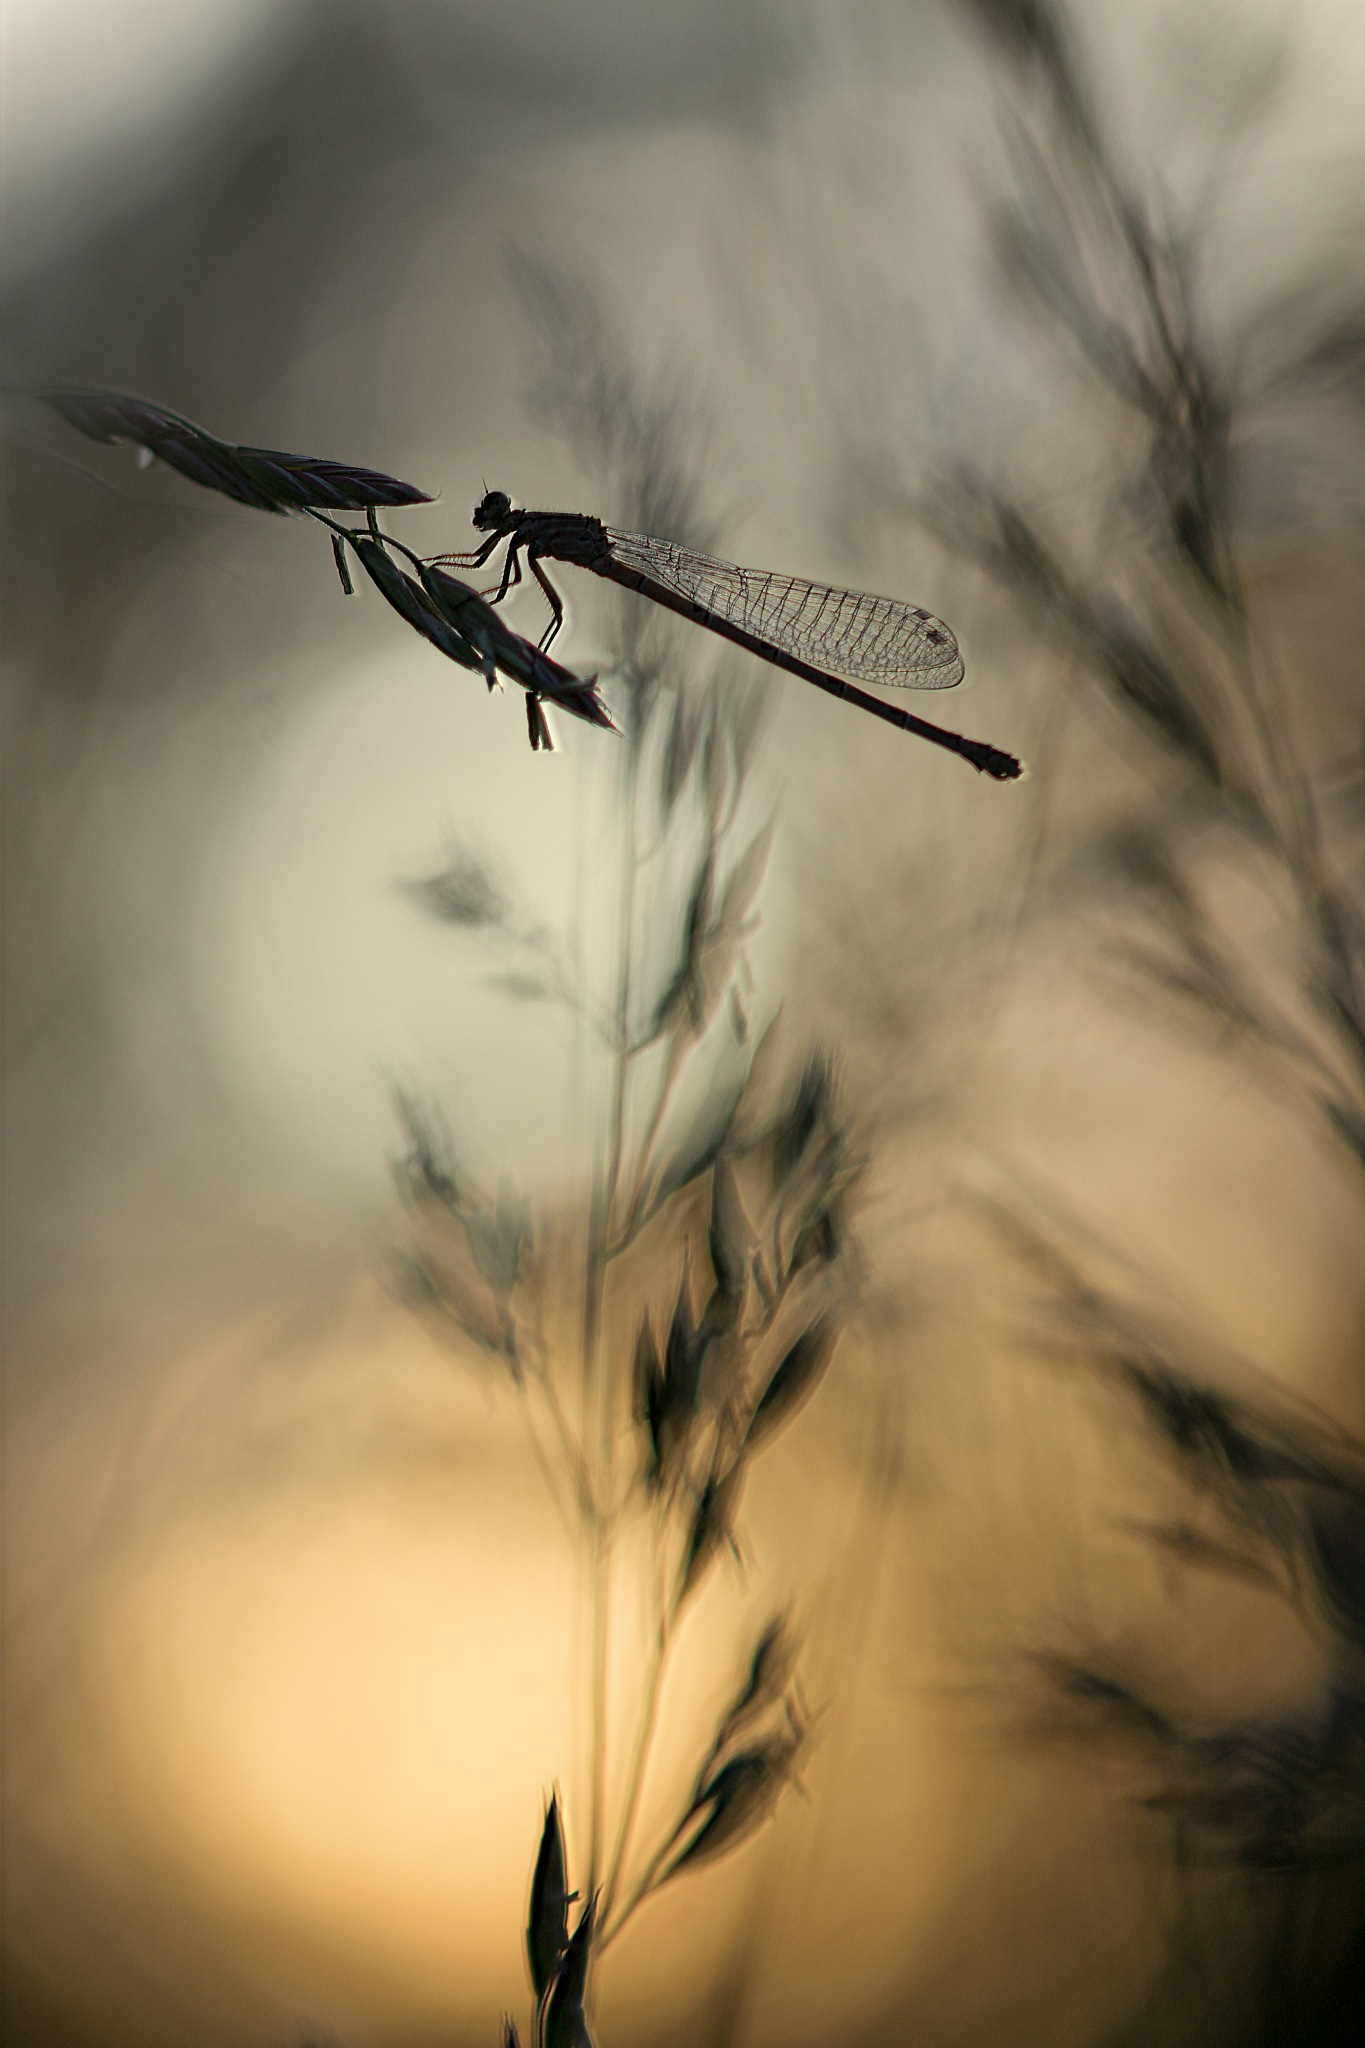 Agrion by Yves Droeven